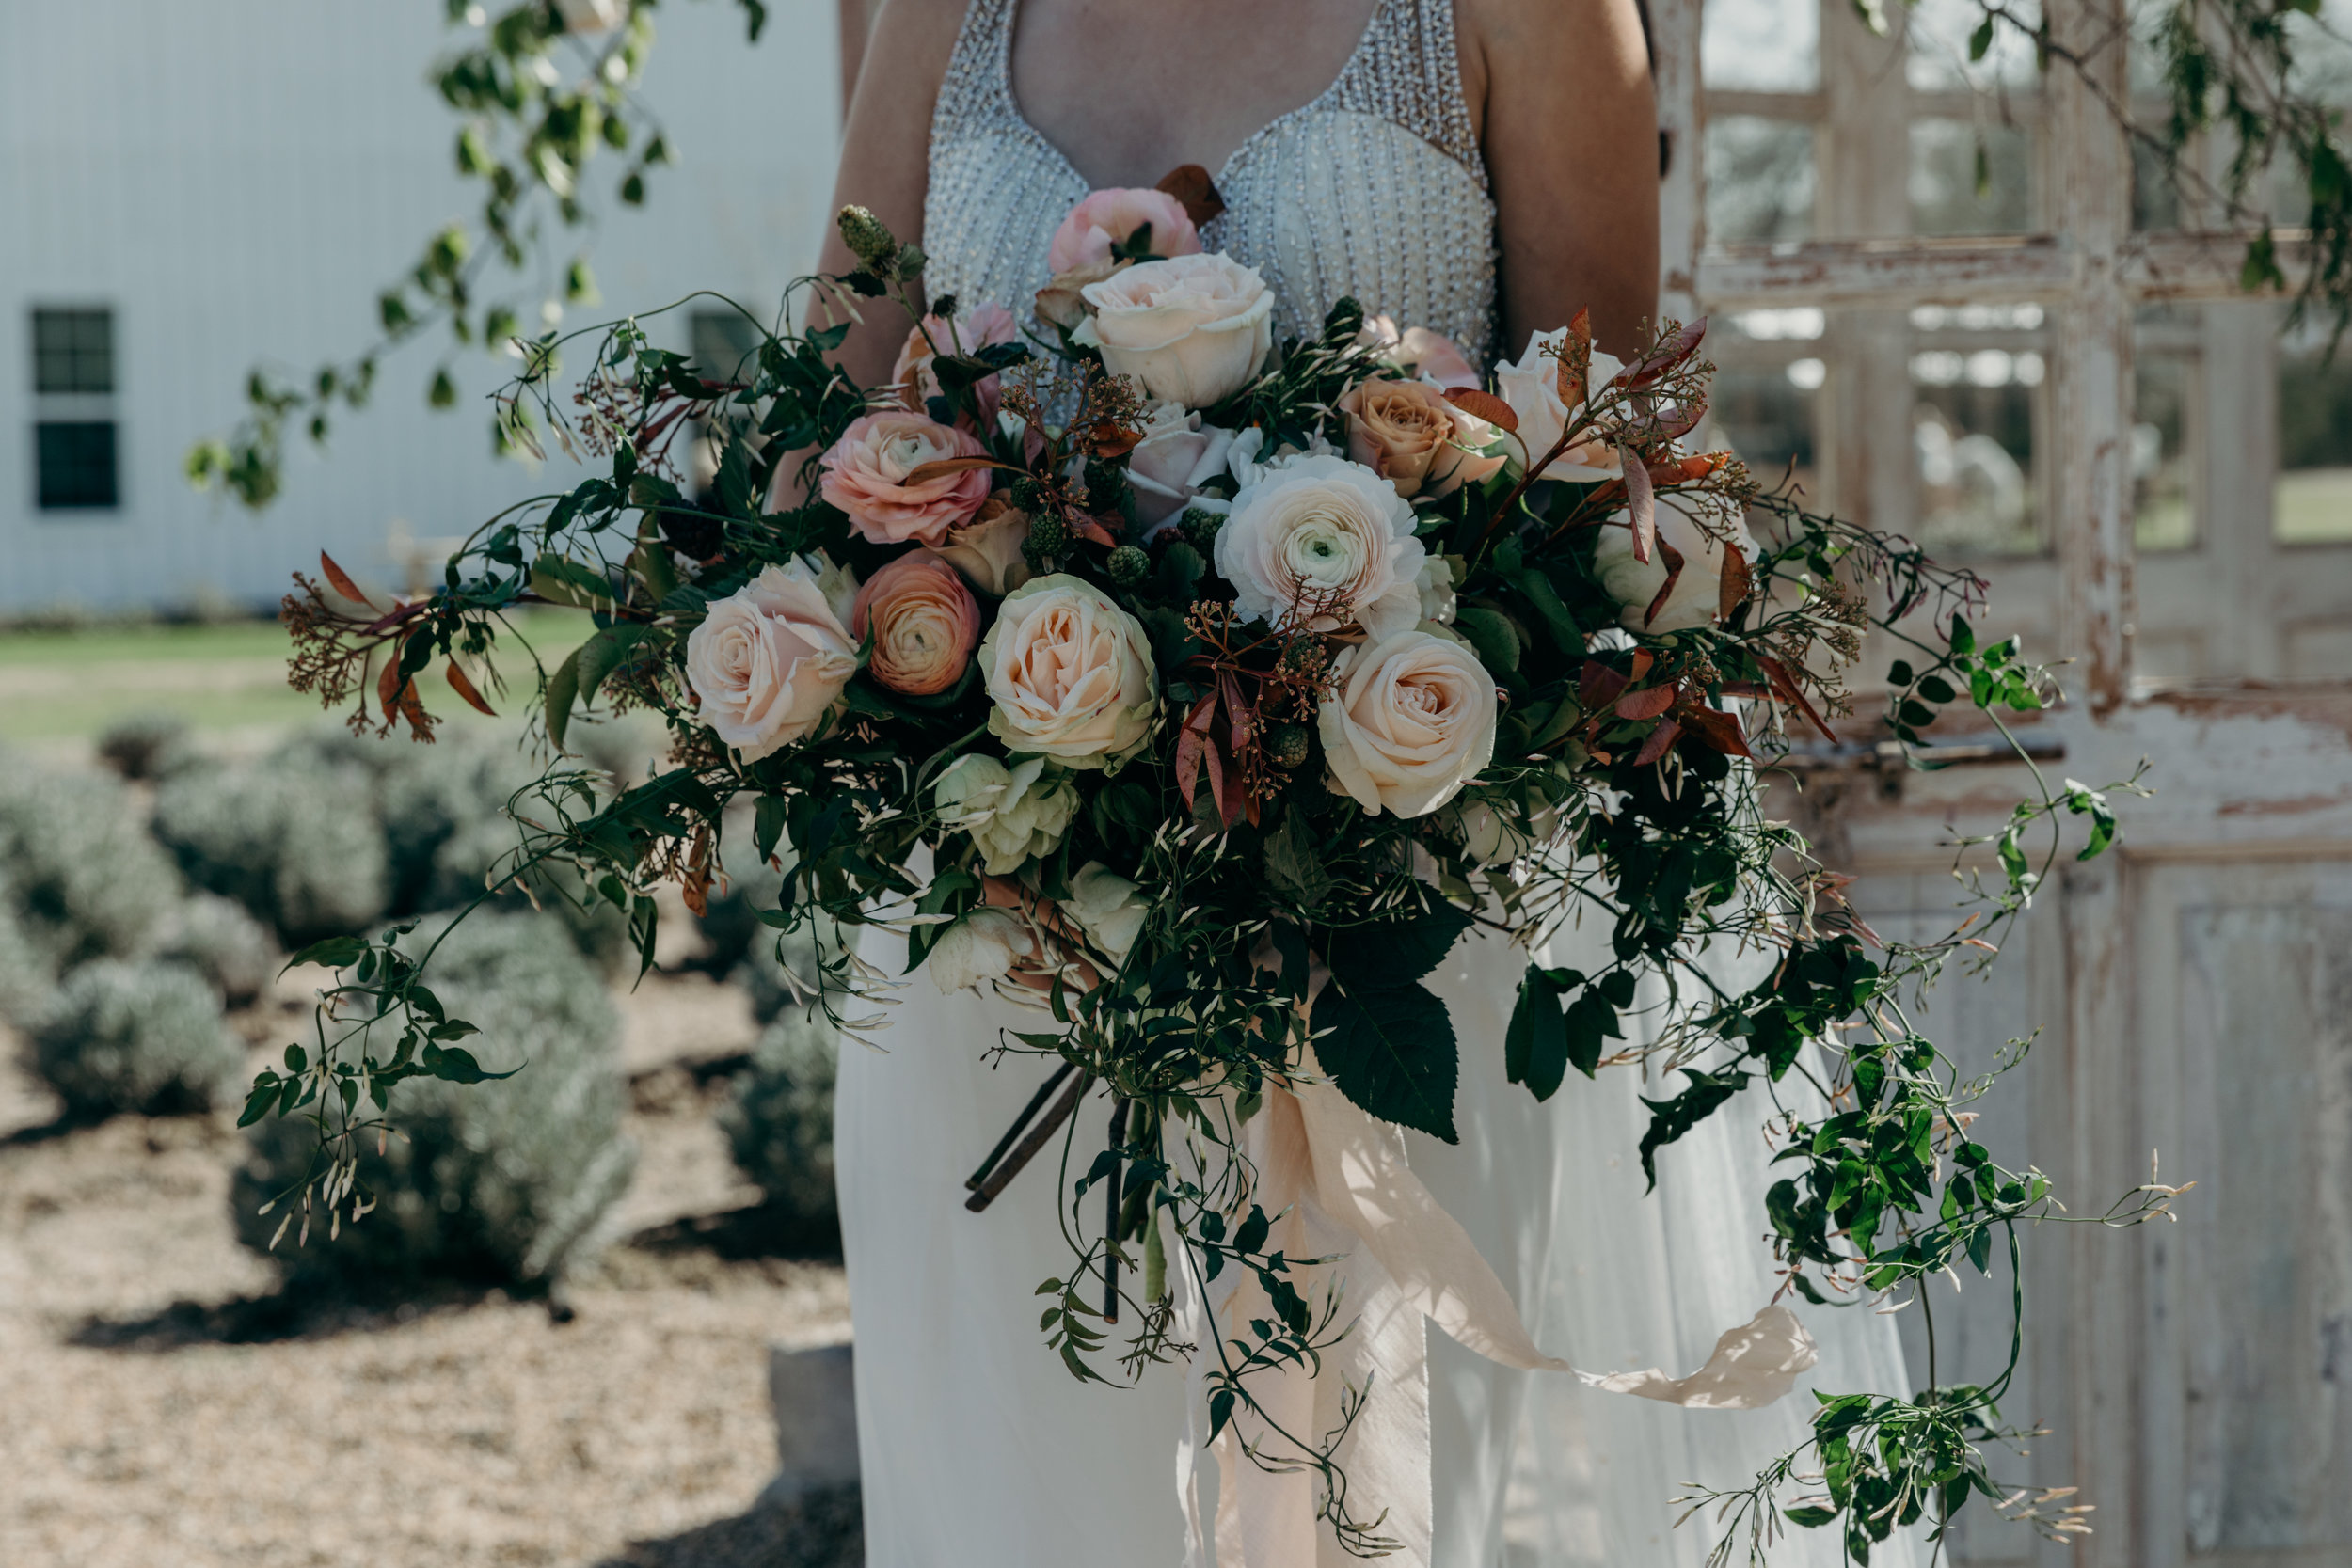 TheWhiteSparrowStyledWeddingShootinTexas-7.jpg